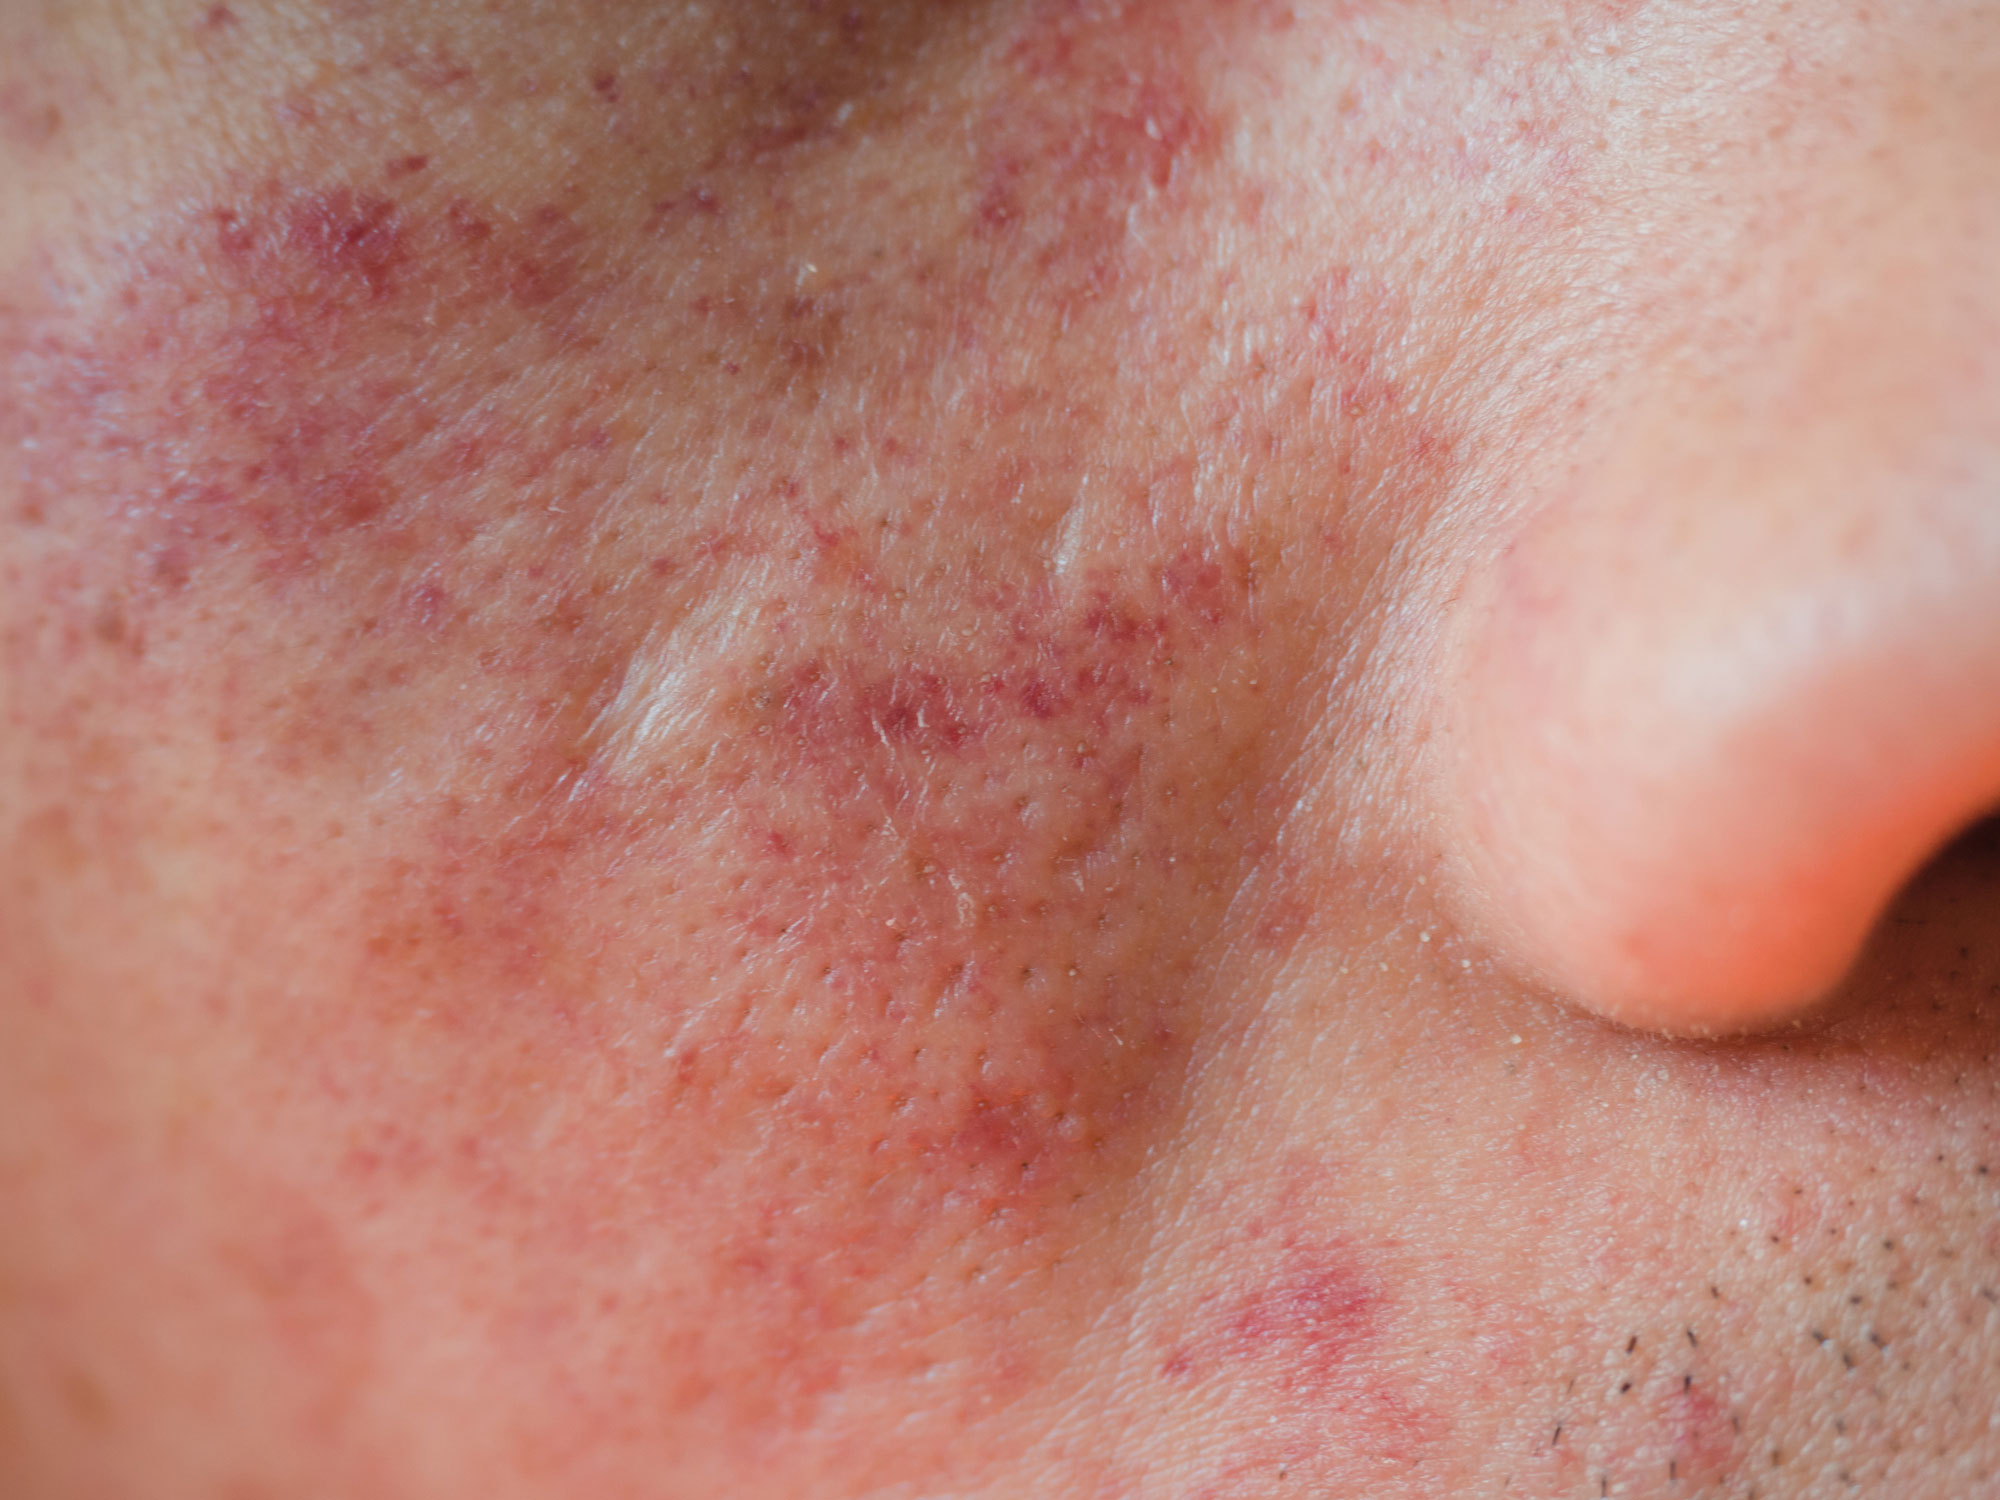 Rashes and blotches